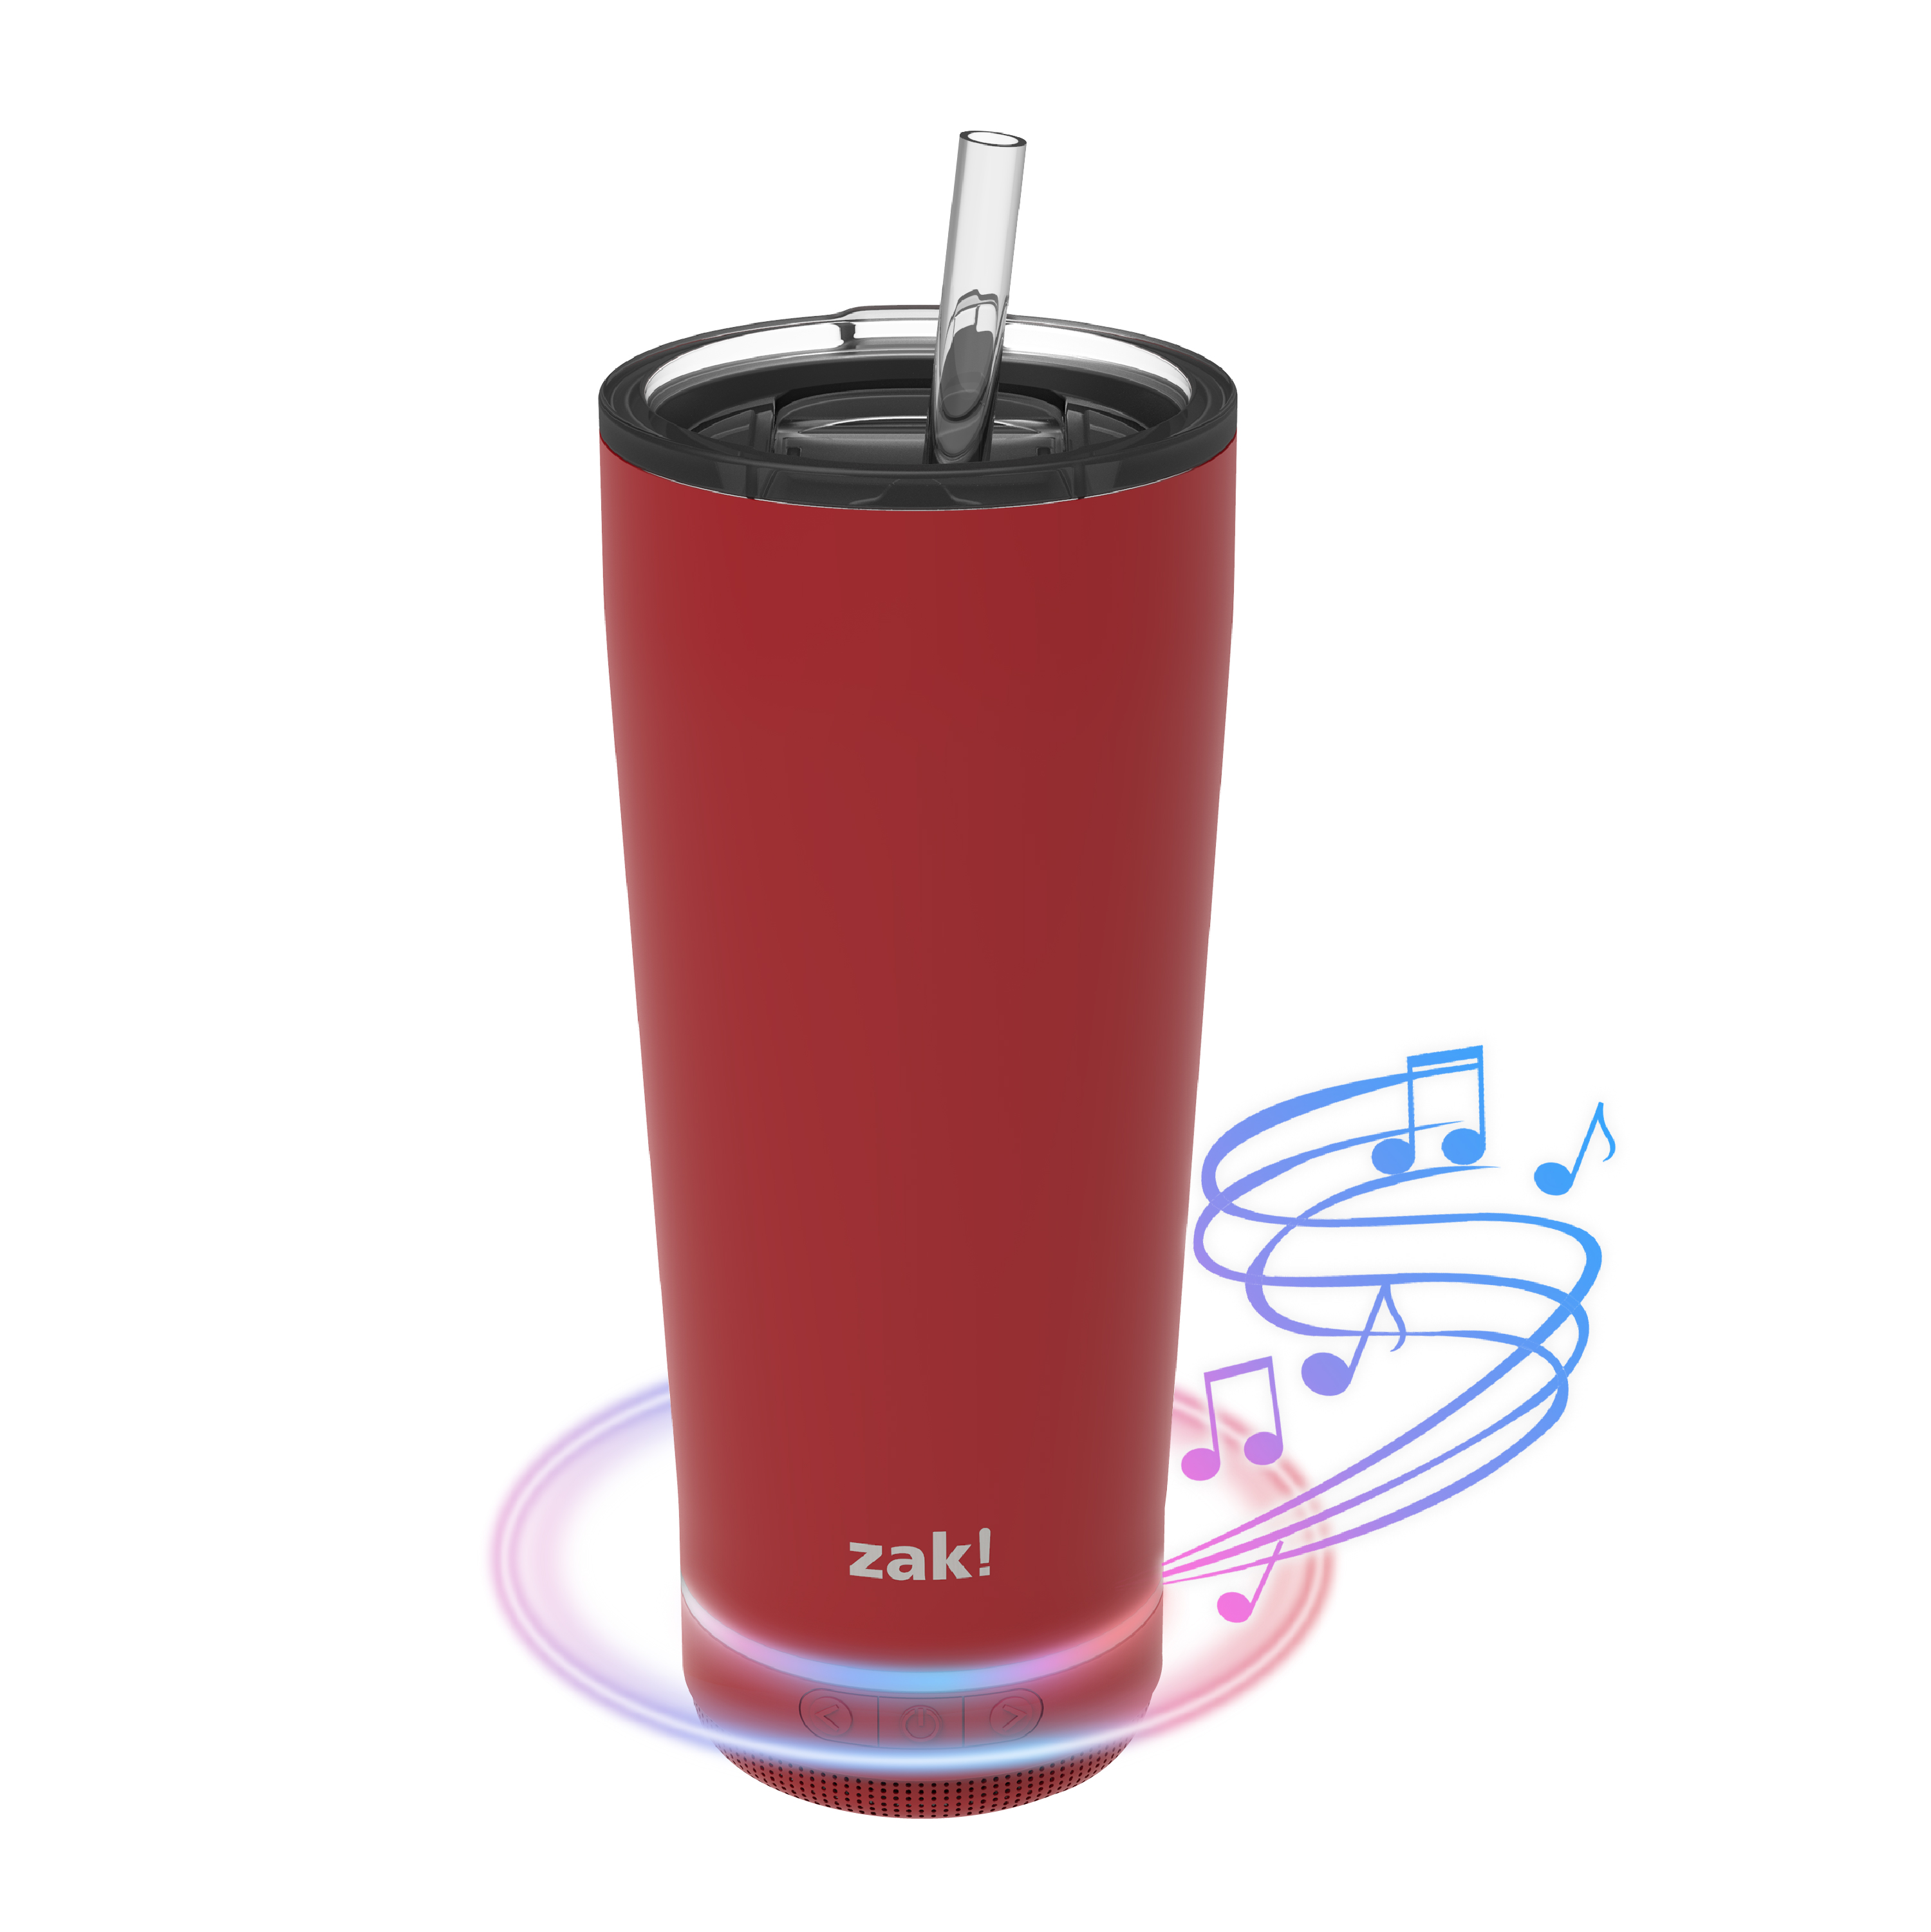 Zak Play 18 ounce Stainless Steel Tumbler with Bluetooth Speaker, Red slideshow image 13